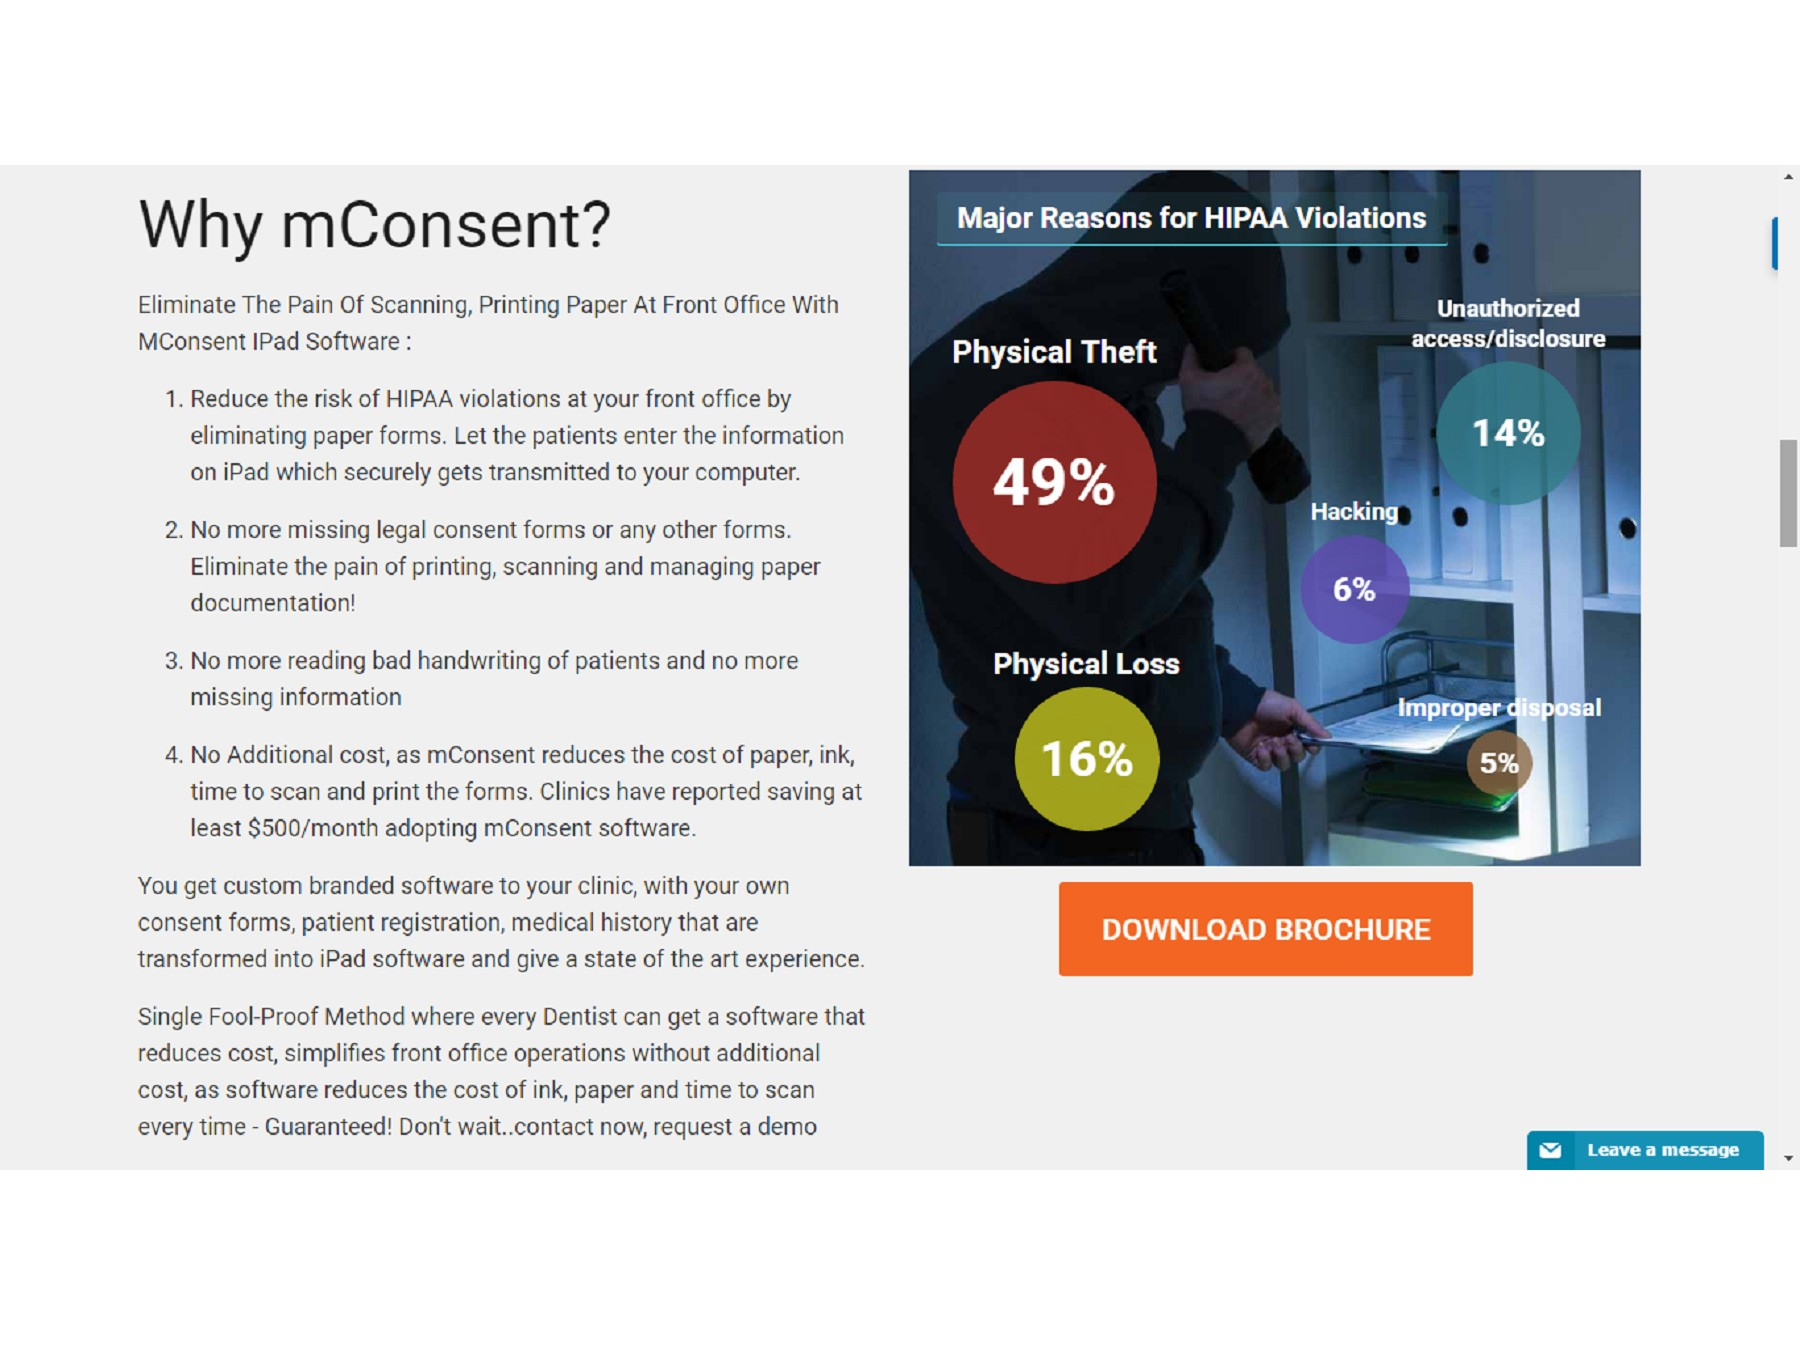 Hipaa Patient Consent Form | Medical History Forms - mConsent